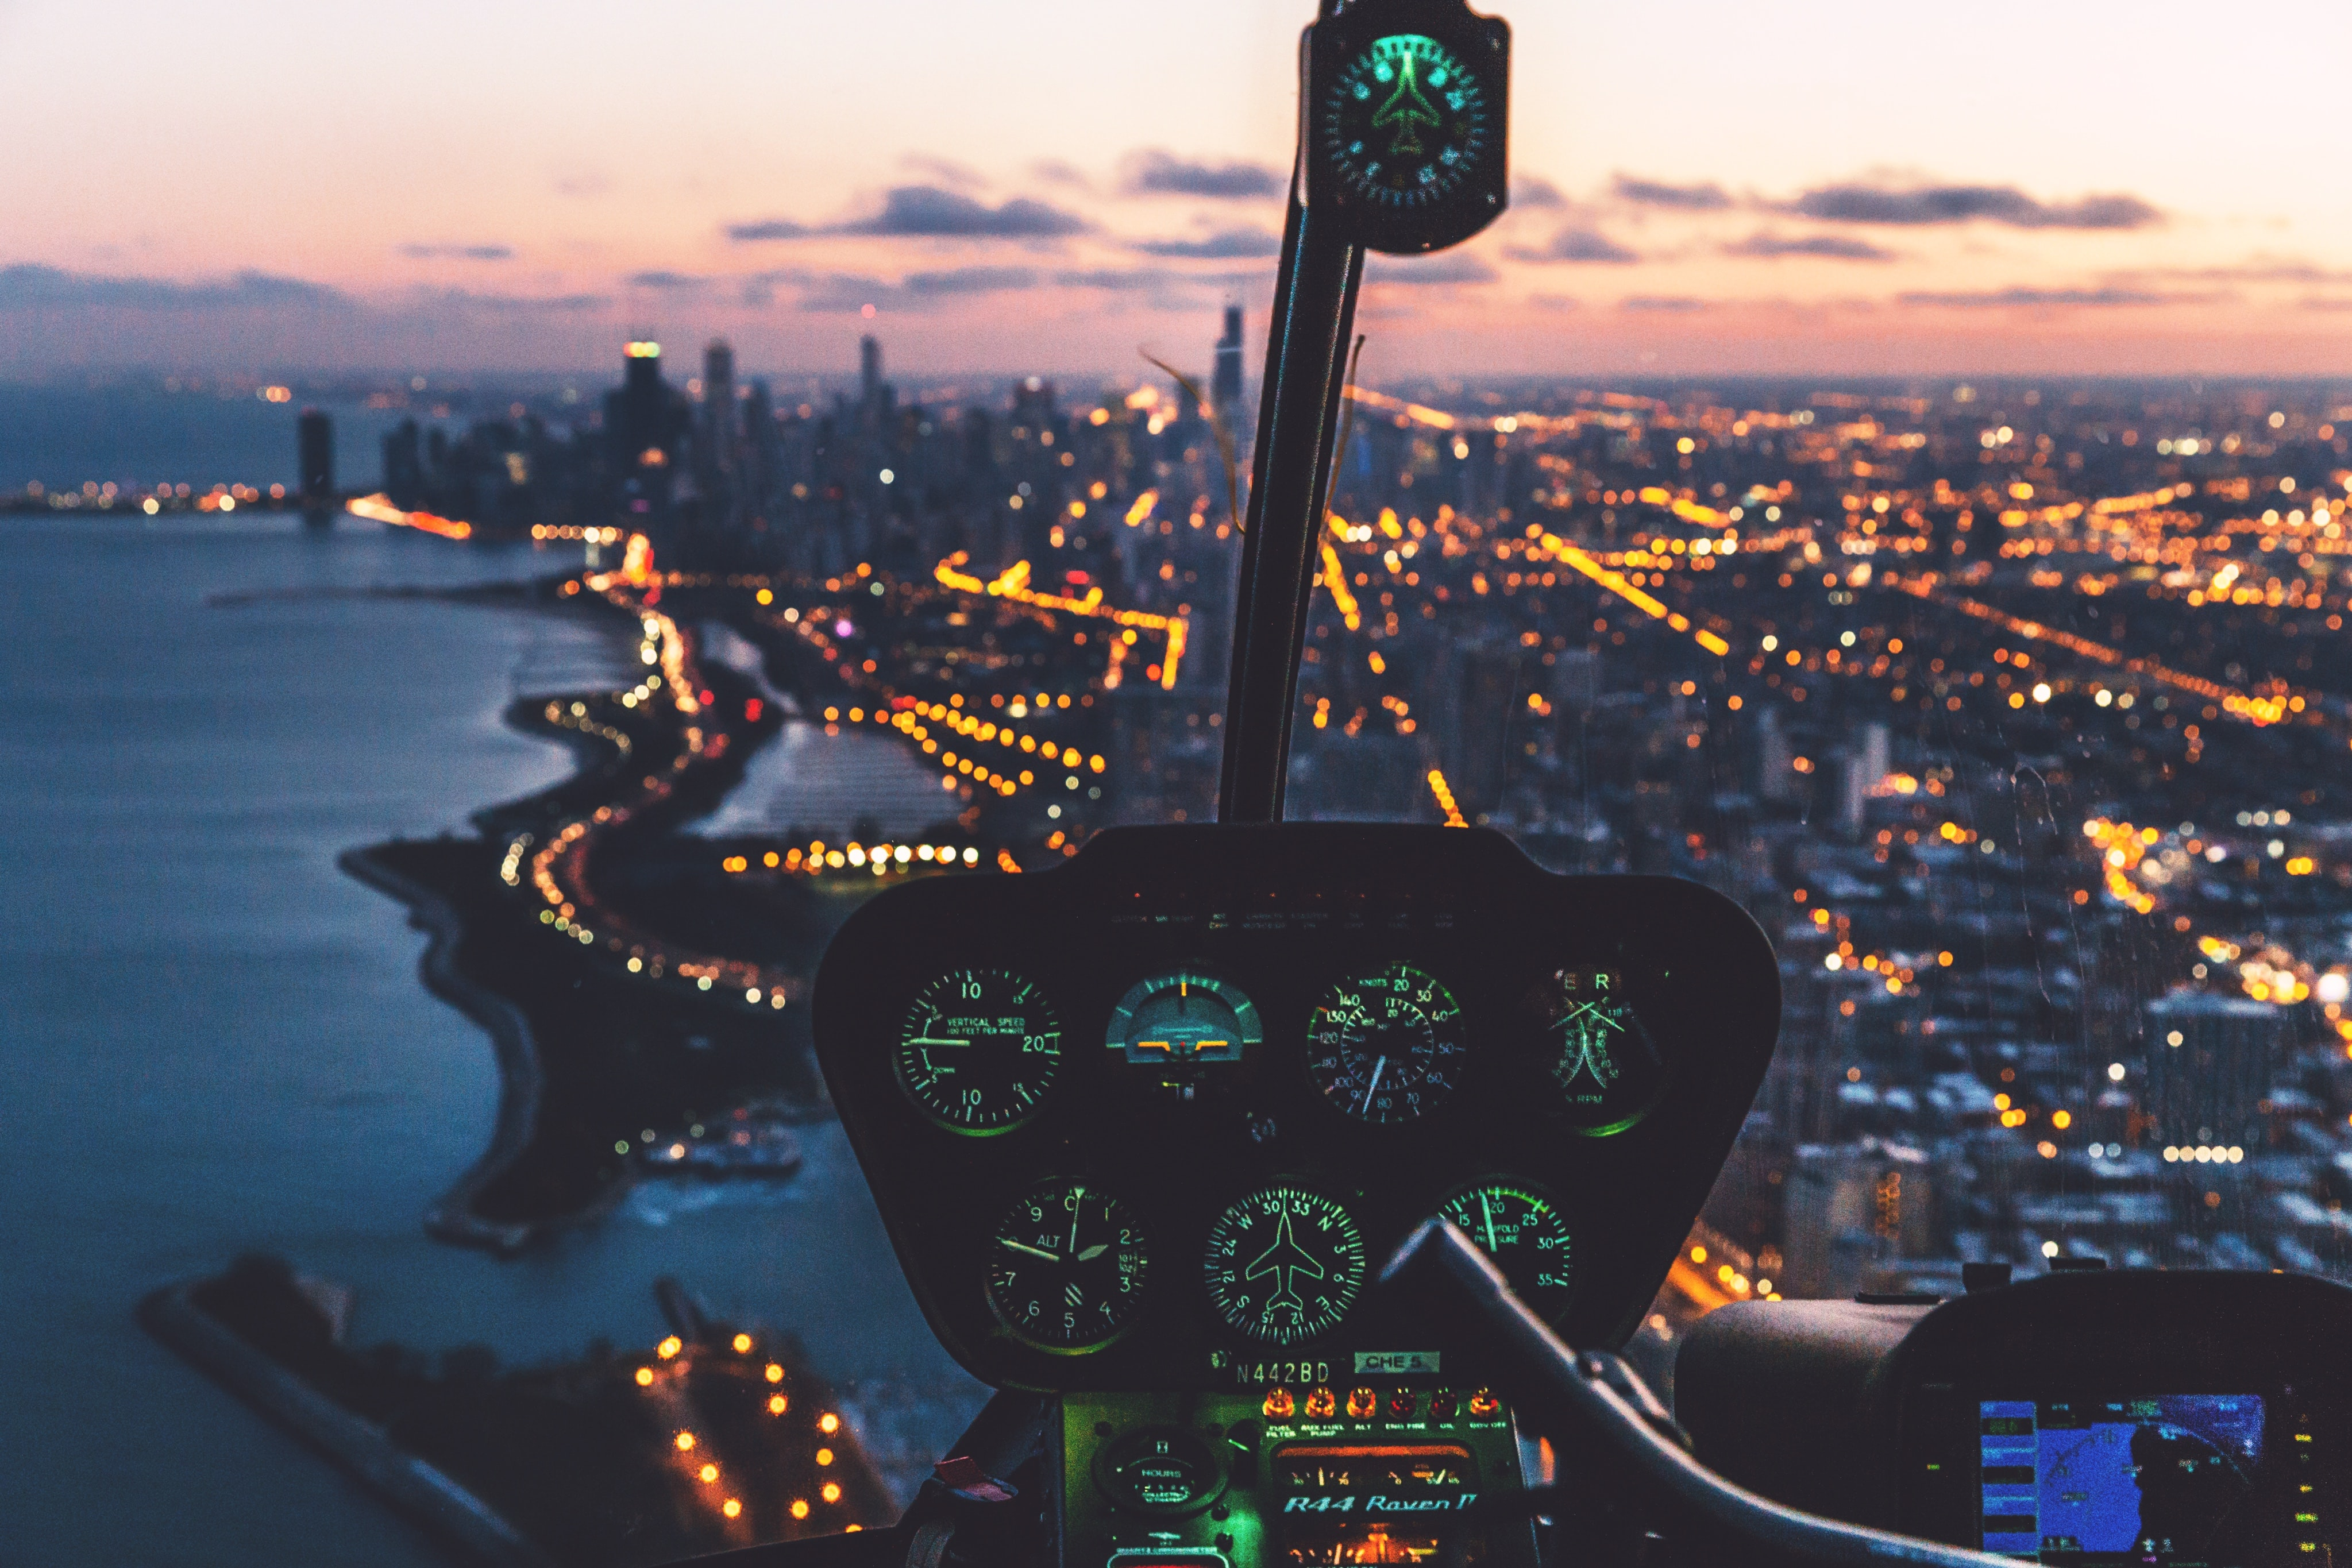 Dashboard of helicopter flying over a city with skyscrapers at dusk